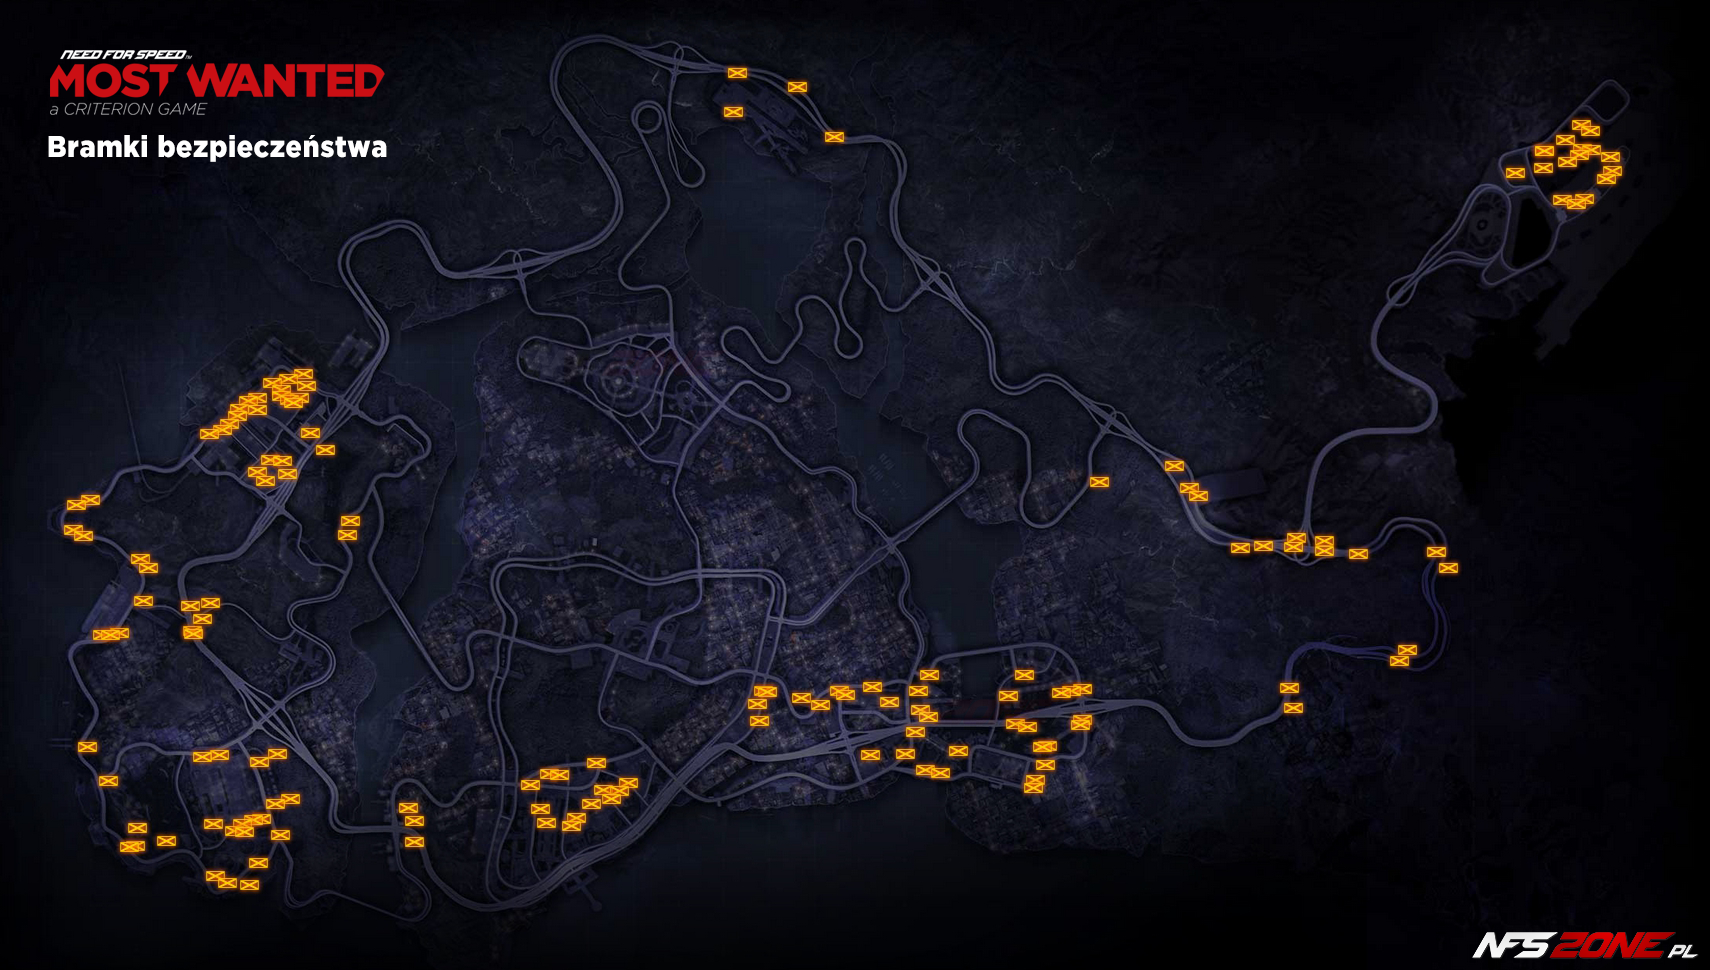 NFS - Need for Speed Most Wanted (2012) - mapa bramki bezpieczeństwa Fairhaven - Security Gates Map